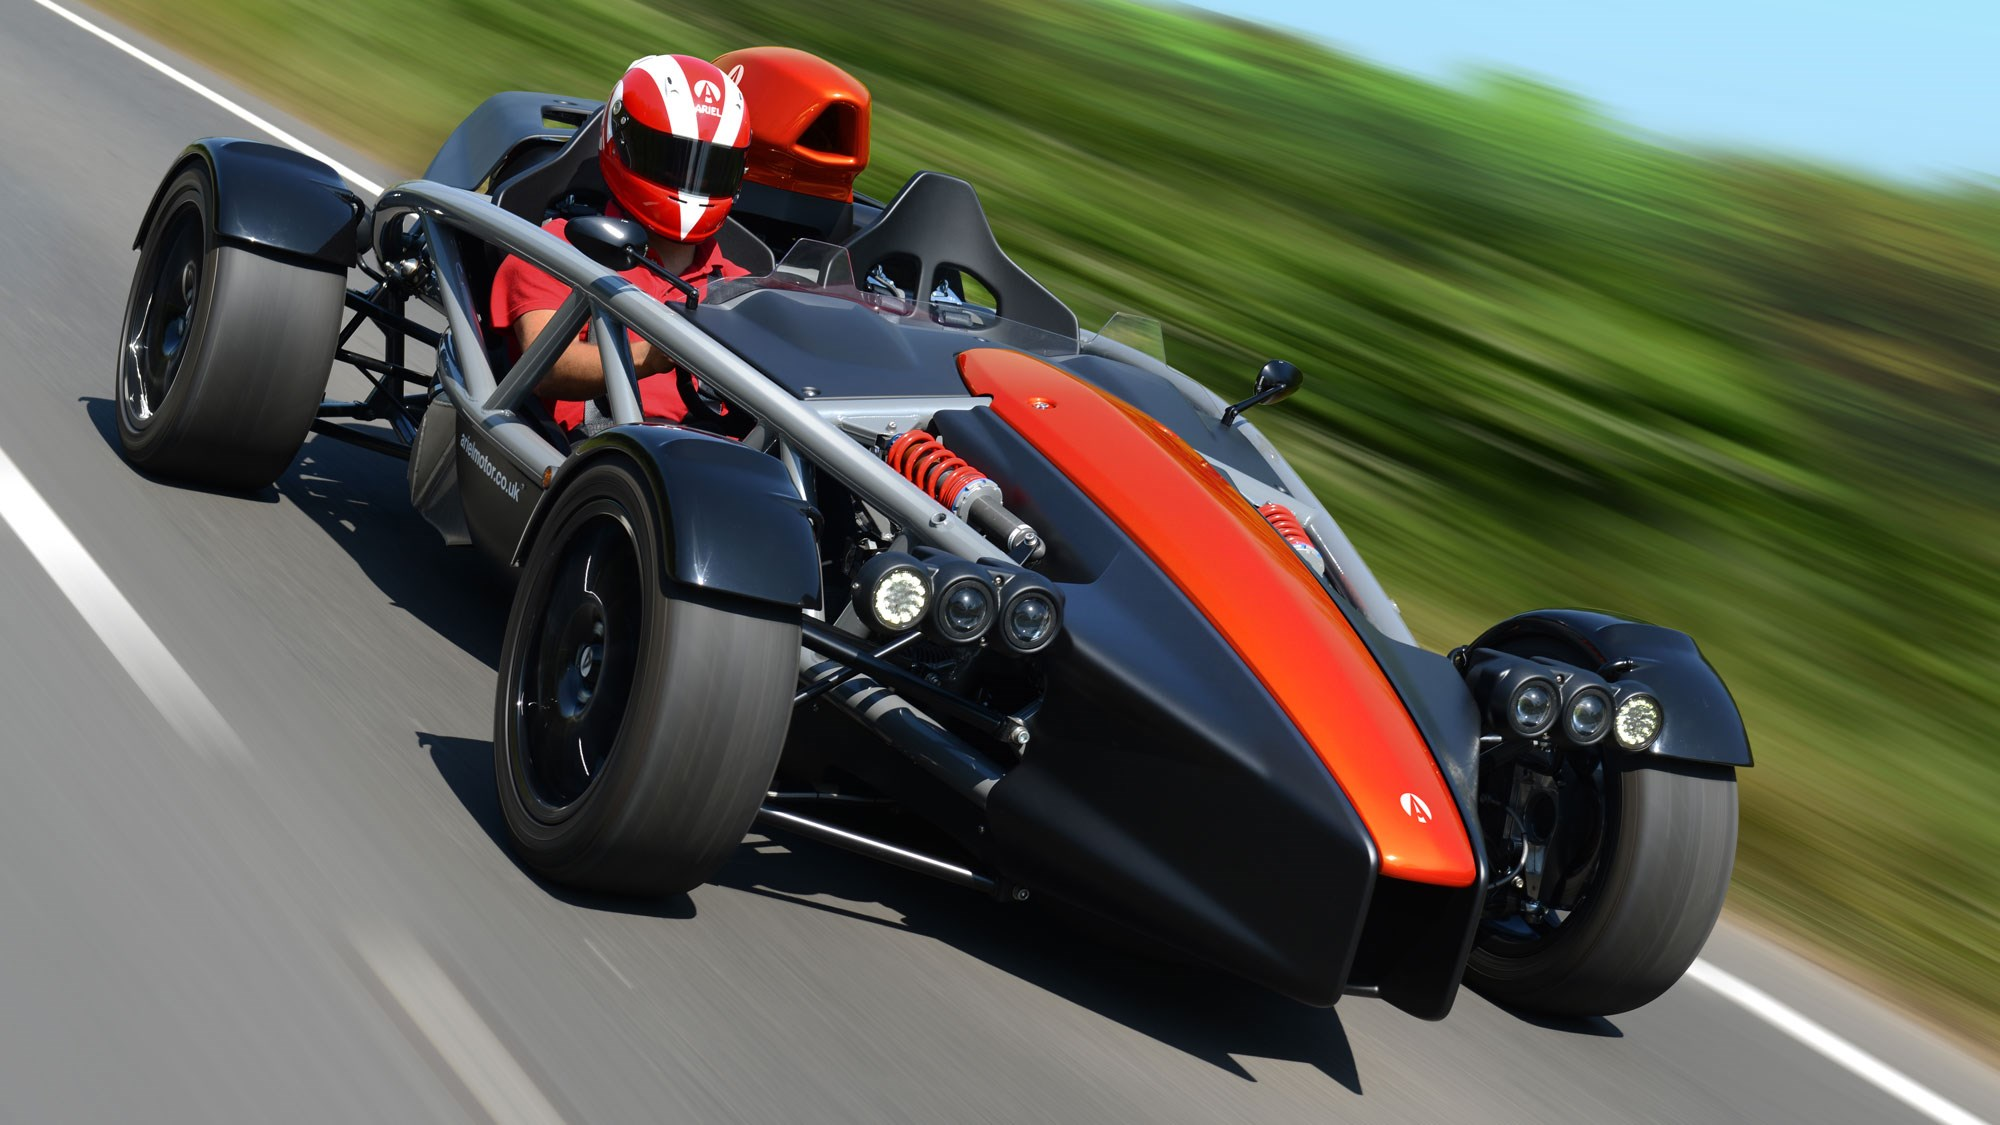 New Ariel Atom 4 a Type R-powered trackday weapon